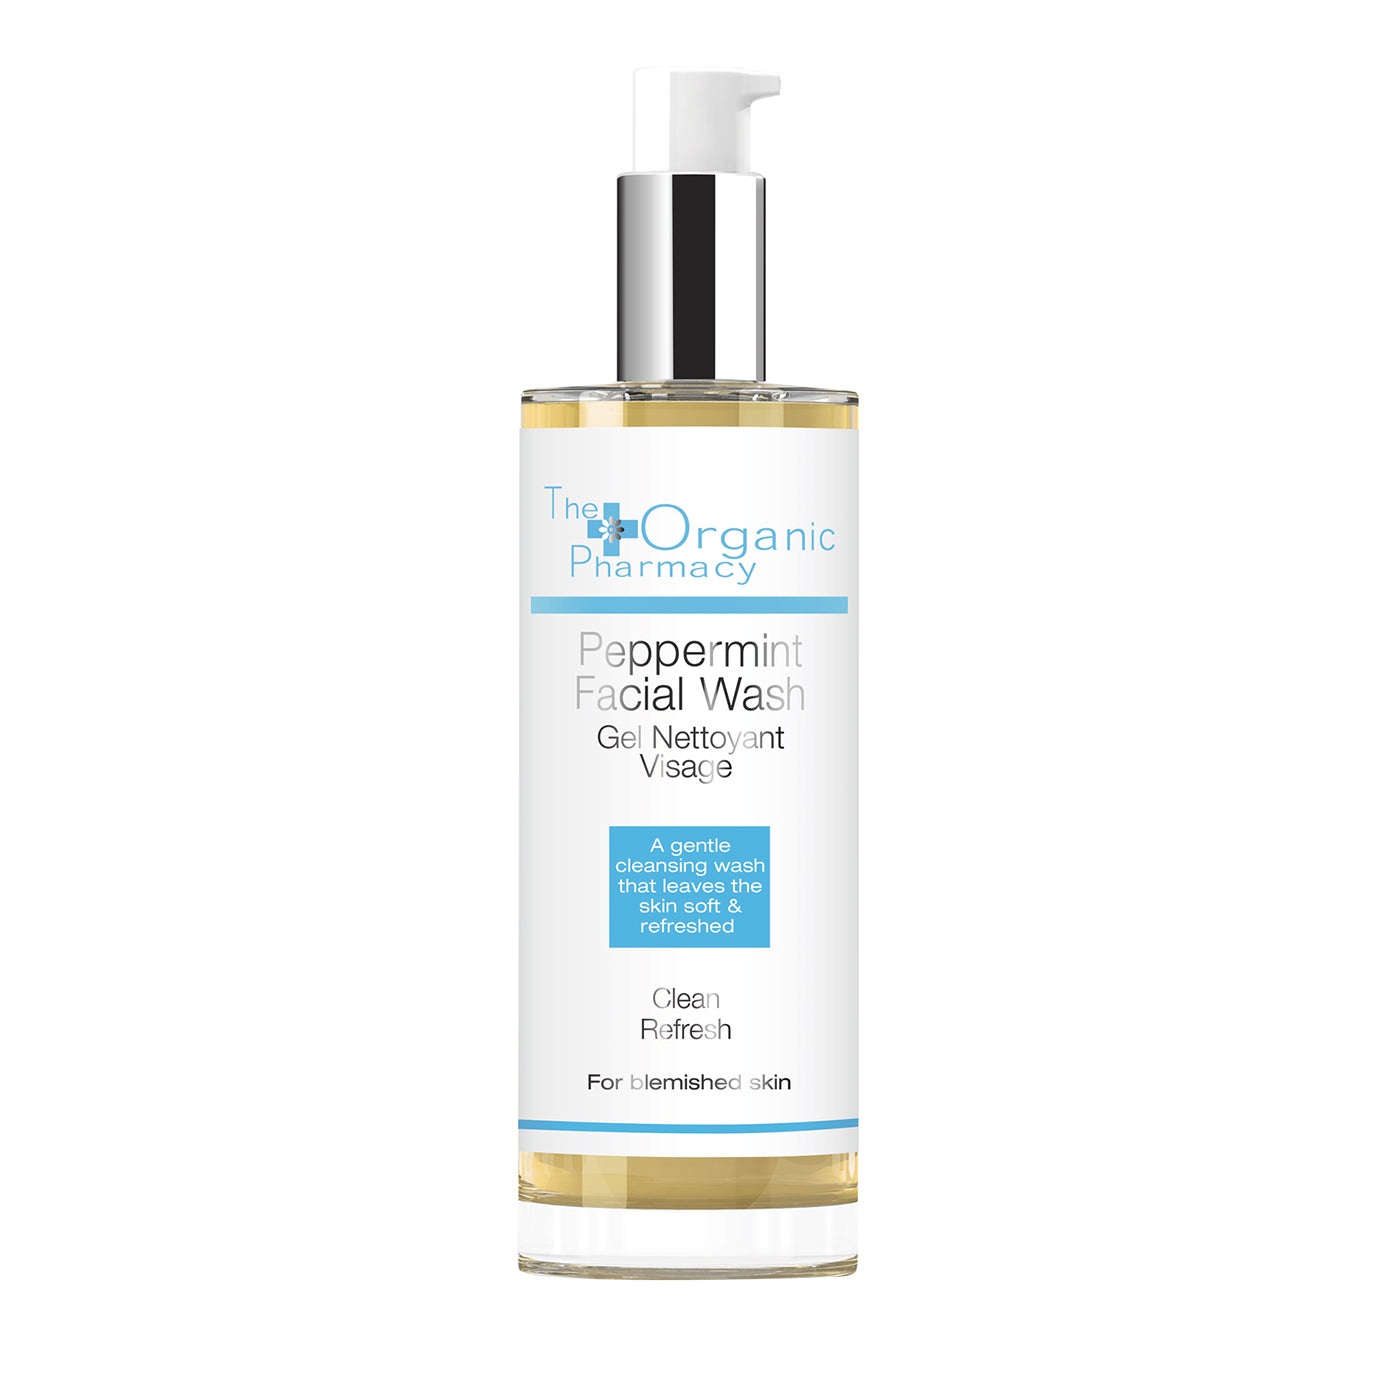 Organic Pharmacy Peppermint Face Wash